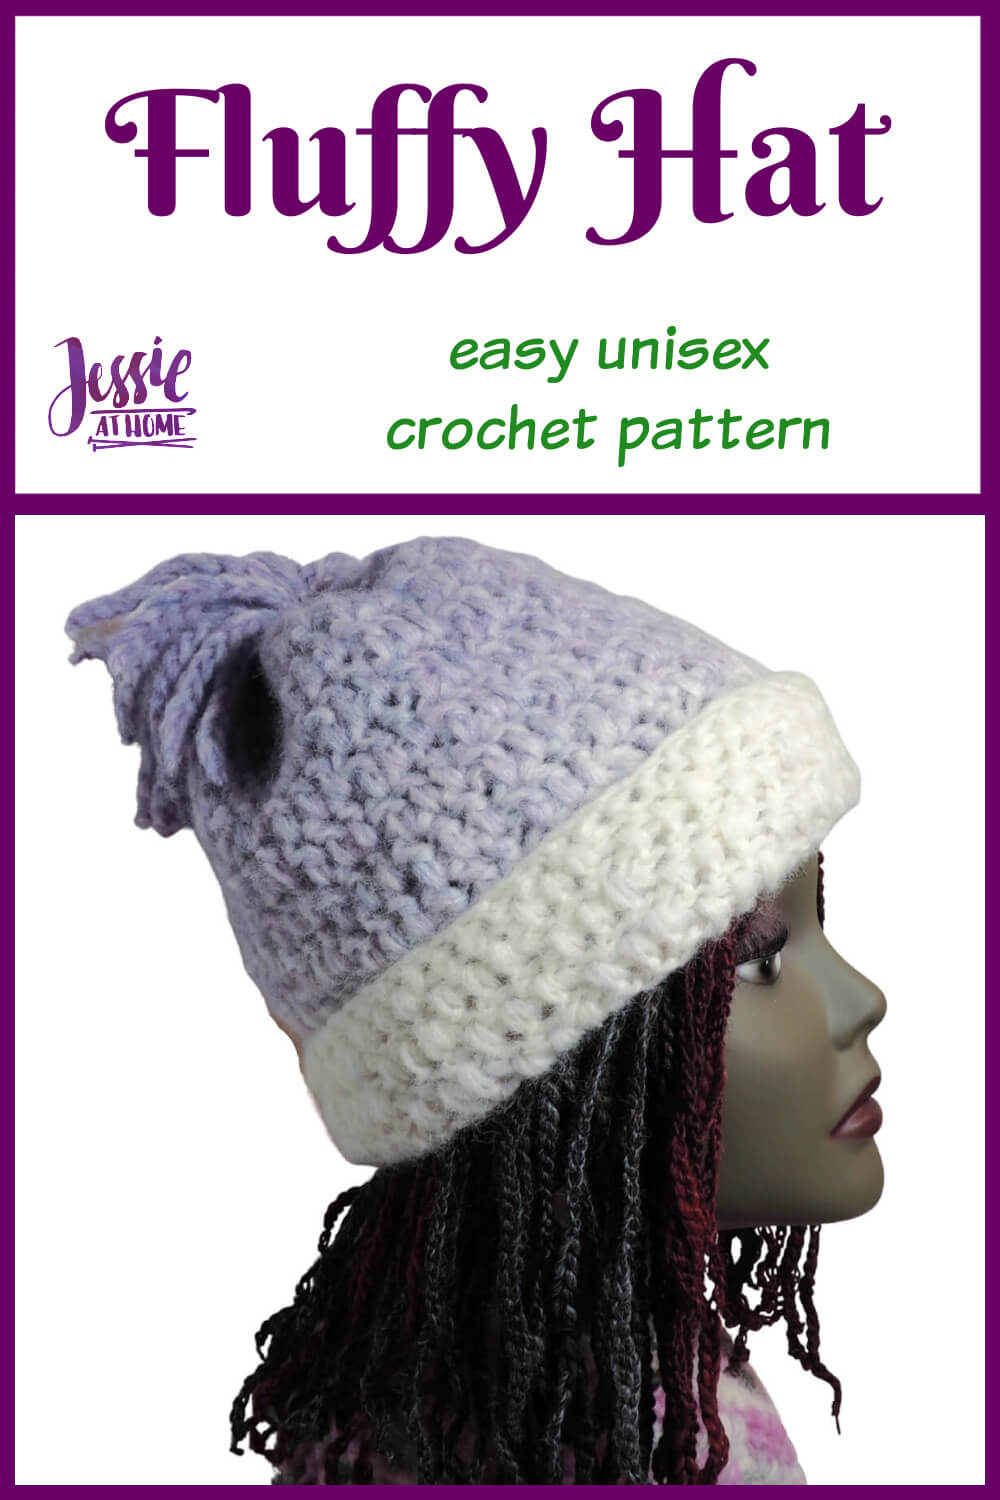 """A white vertical image with a purple boarder and a picture of a mannequin head with a hat that is purple with a white stripe across the bottom. There is a tassel on top. On the top are the words """"Fluffy Hat"""" written in purple, under that are the words """"Easy unisex crochet pattern"""" in green. To the left of that is """"Jessie at Home"""" in purple."""